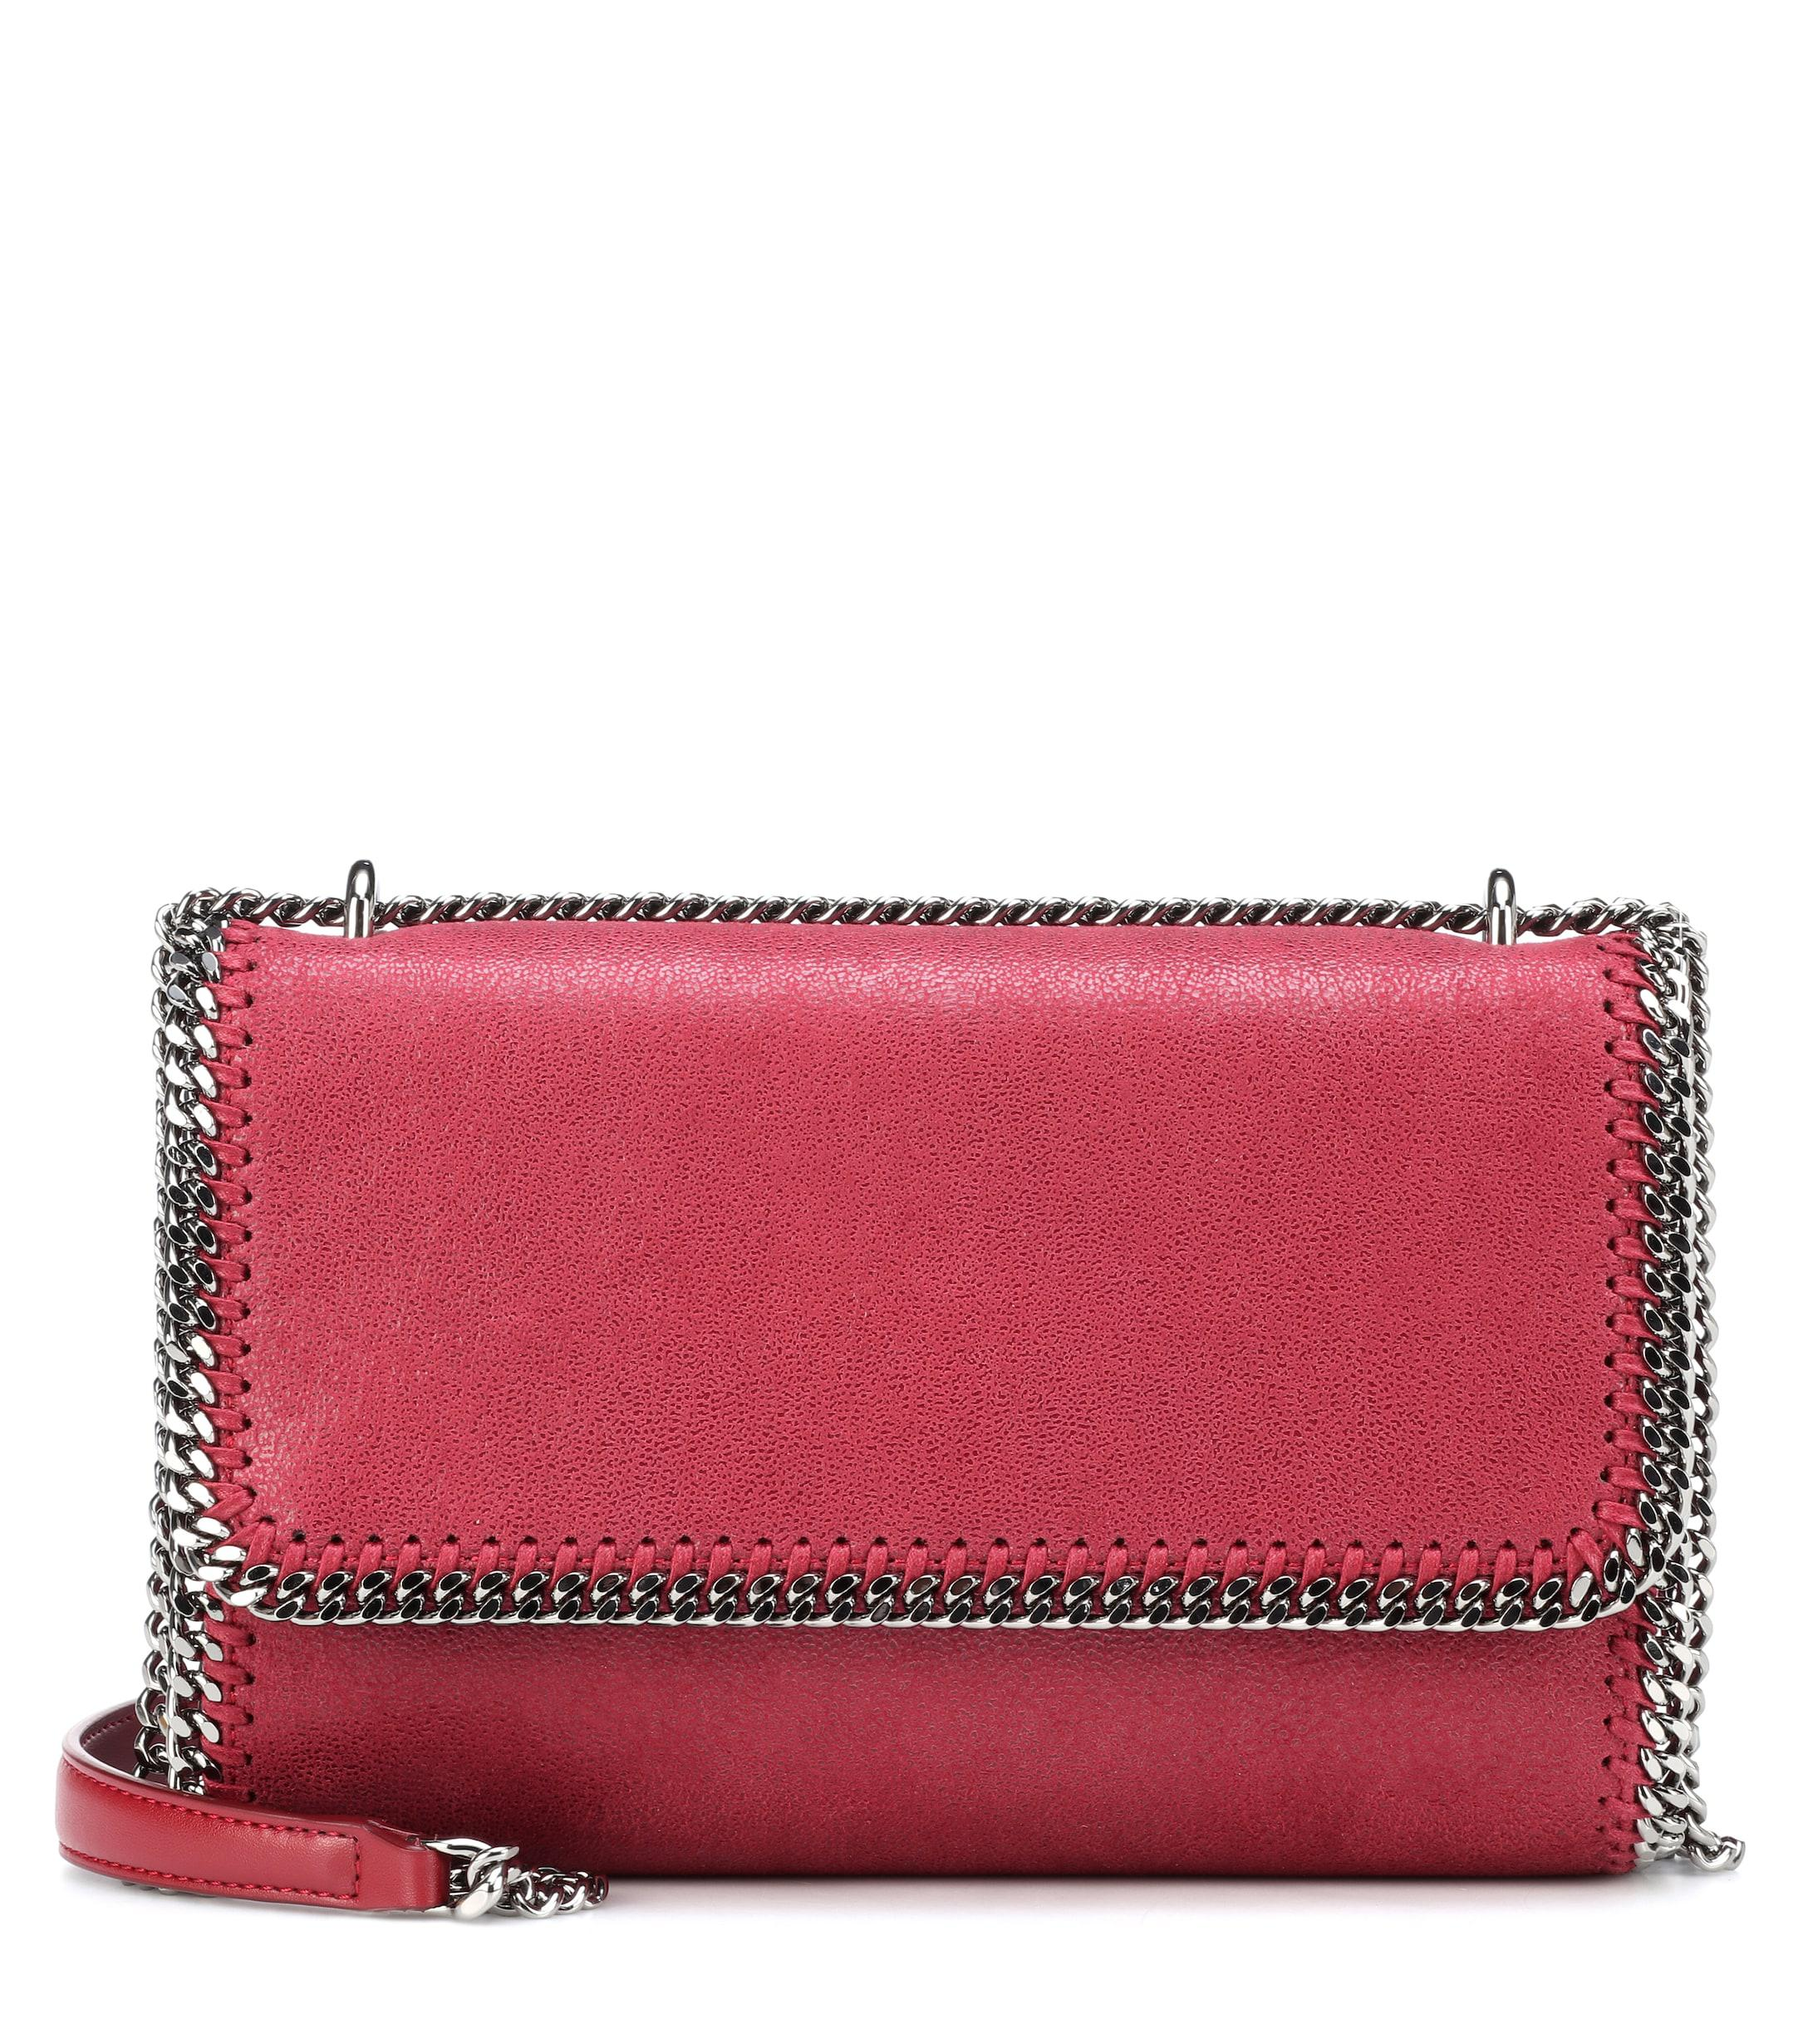 Lyst - Stella Mccartney Falabella Shaggy Deer Shoulder Bag in Red 37e638e34b